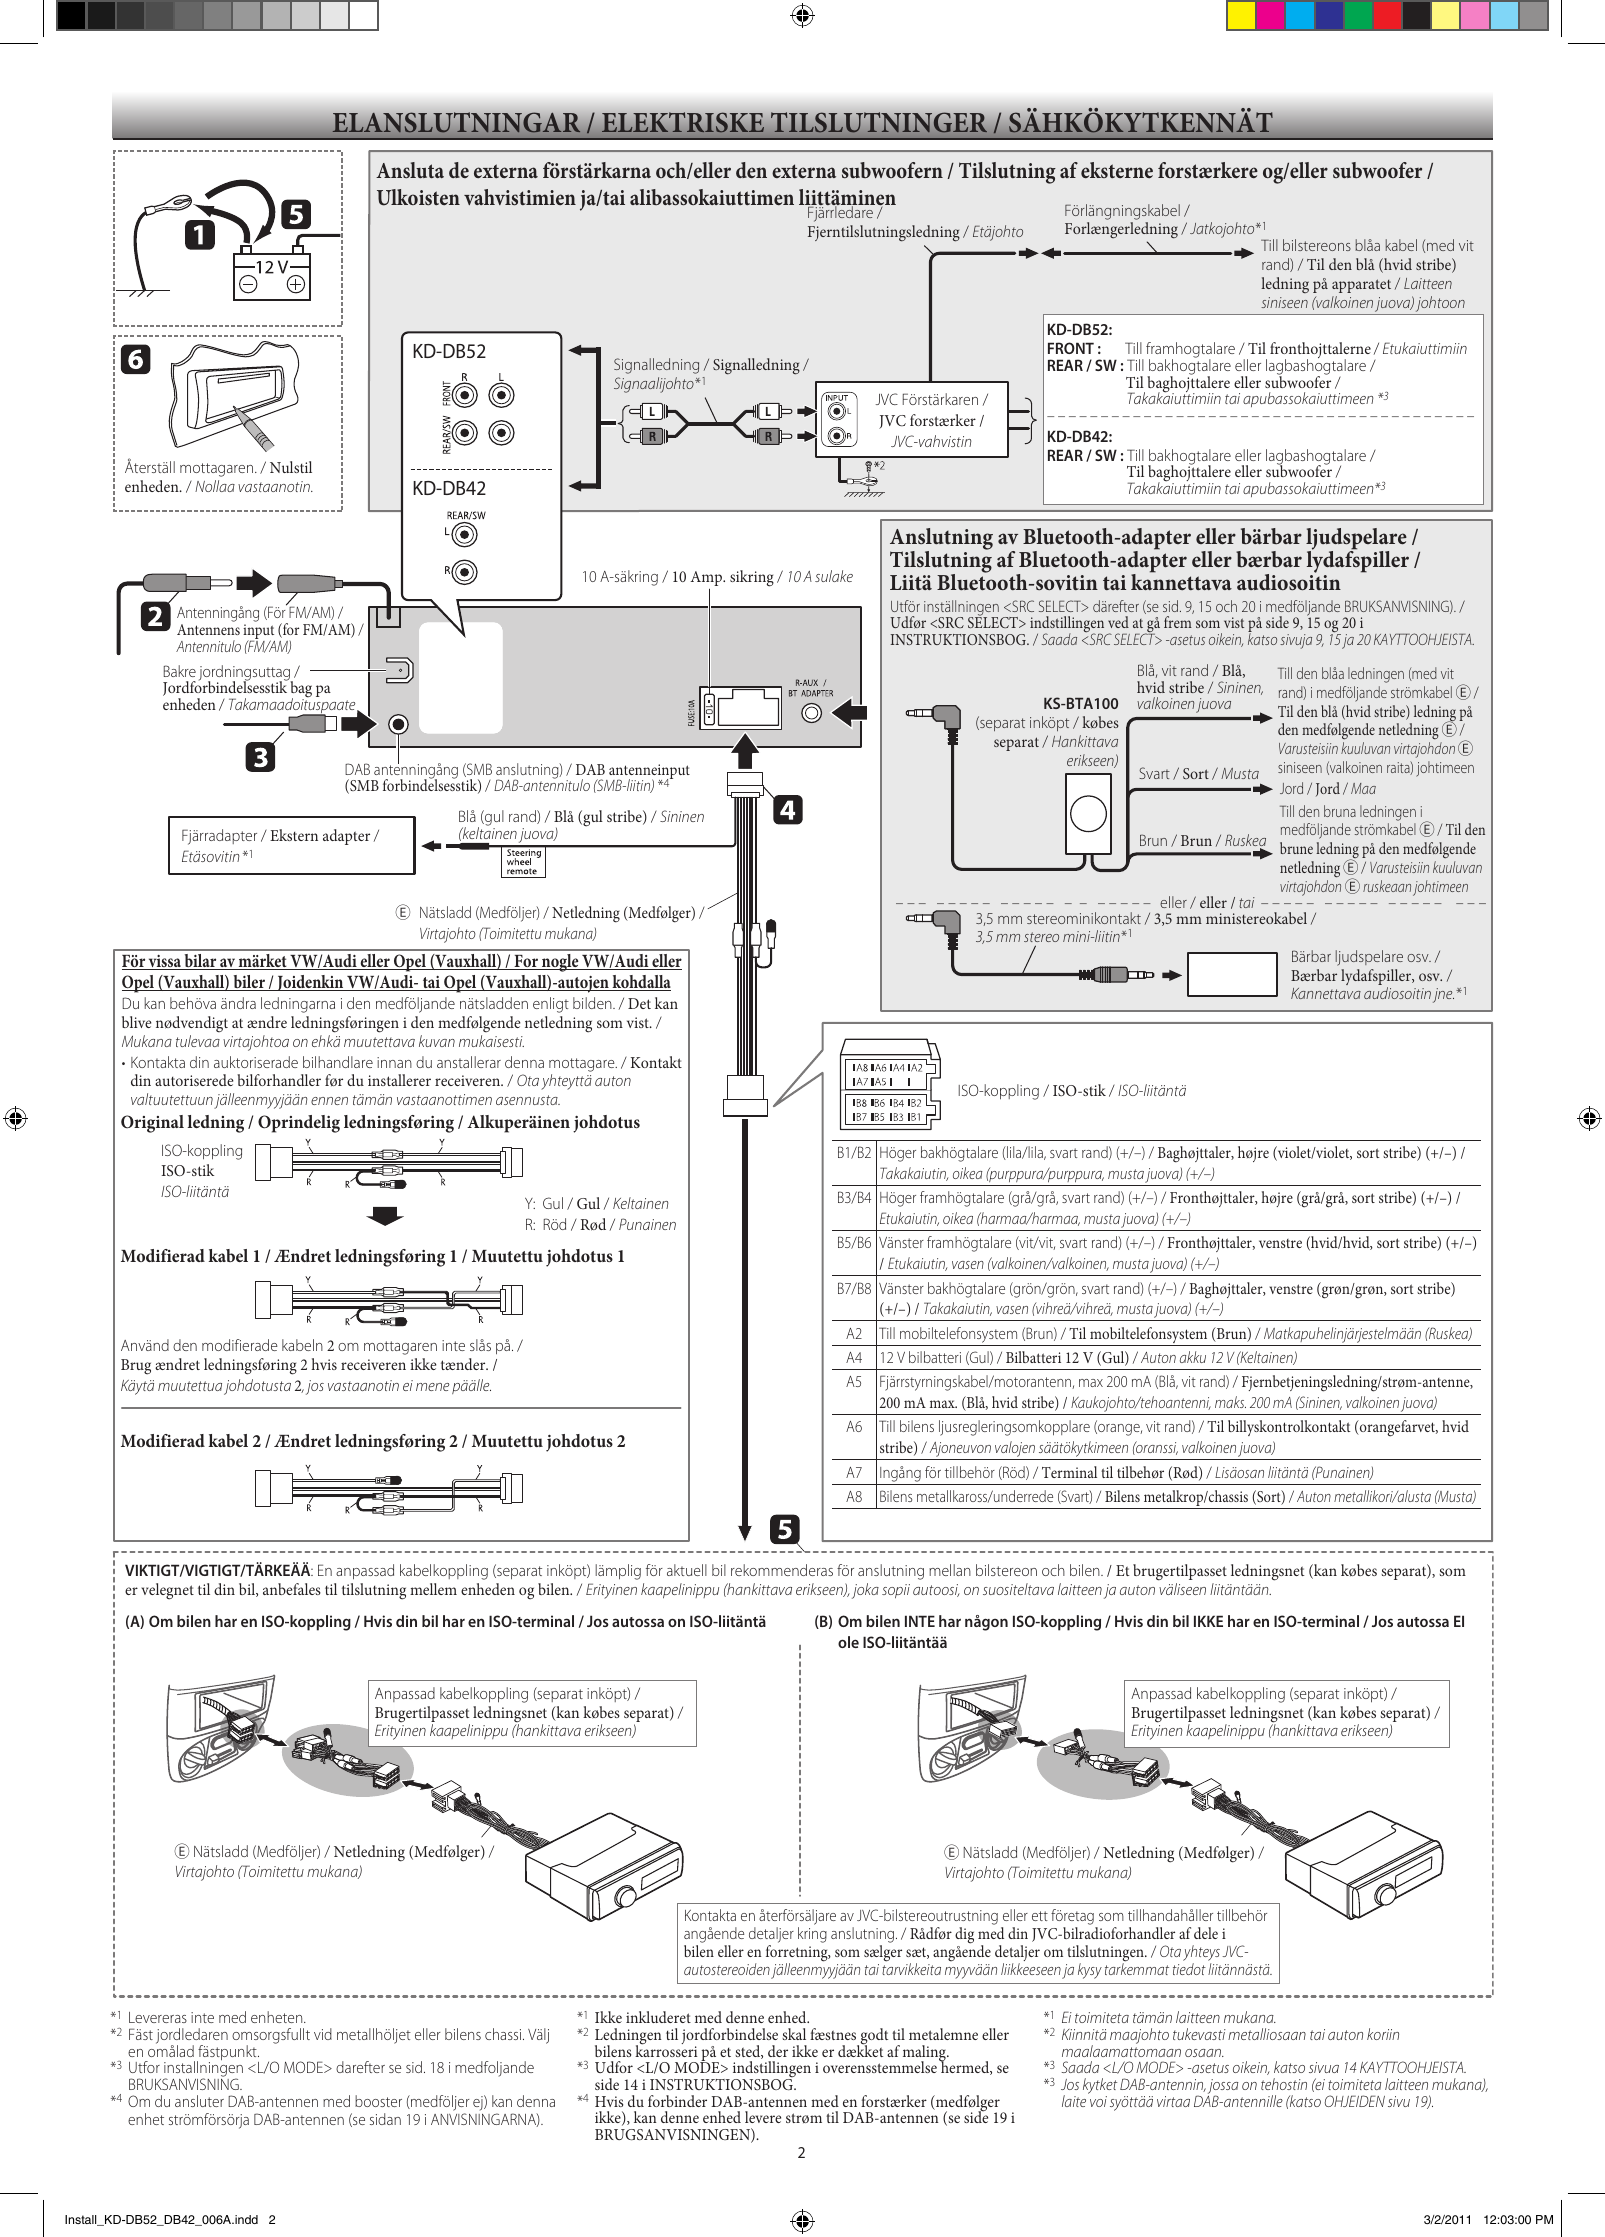 Jvc Kd Db52e Db52 Db42 User Manual Lvt2221 006a Finn Wiring Diagrams Page 2 Of